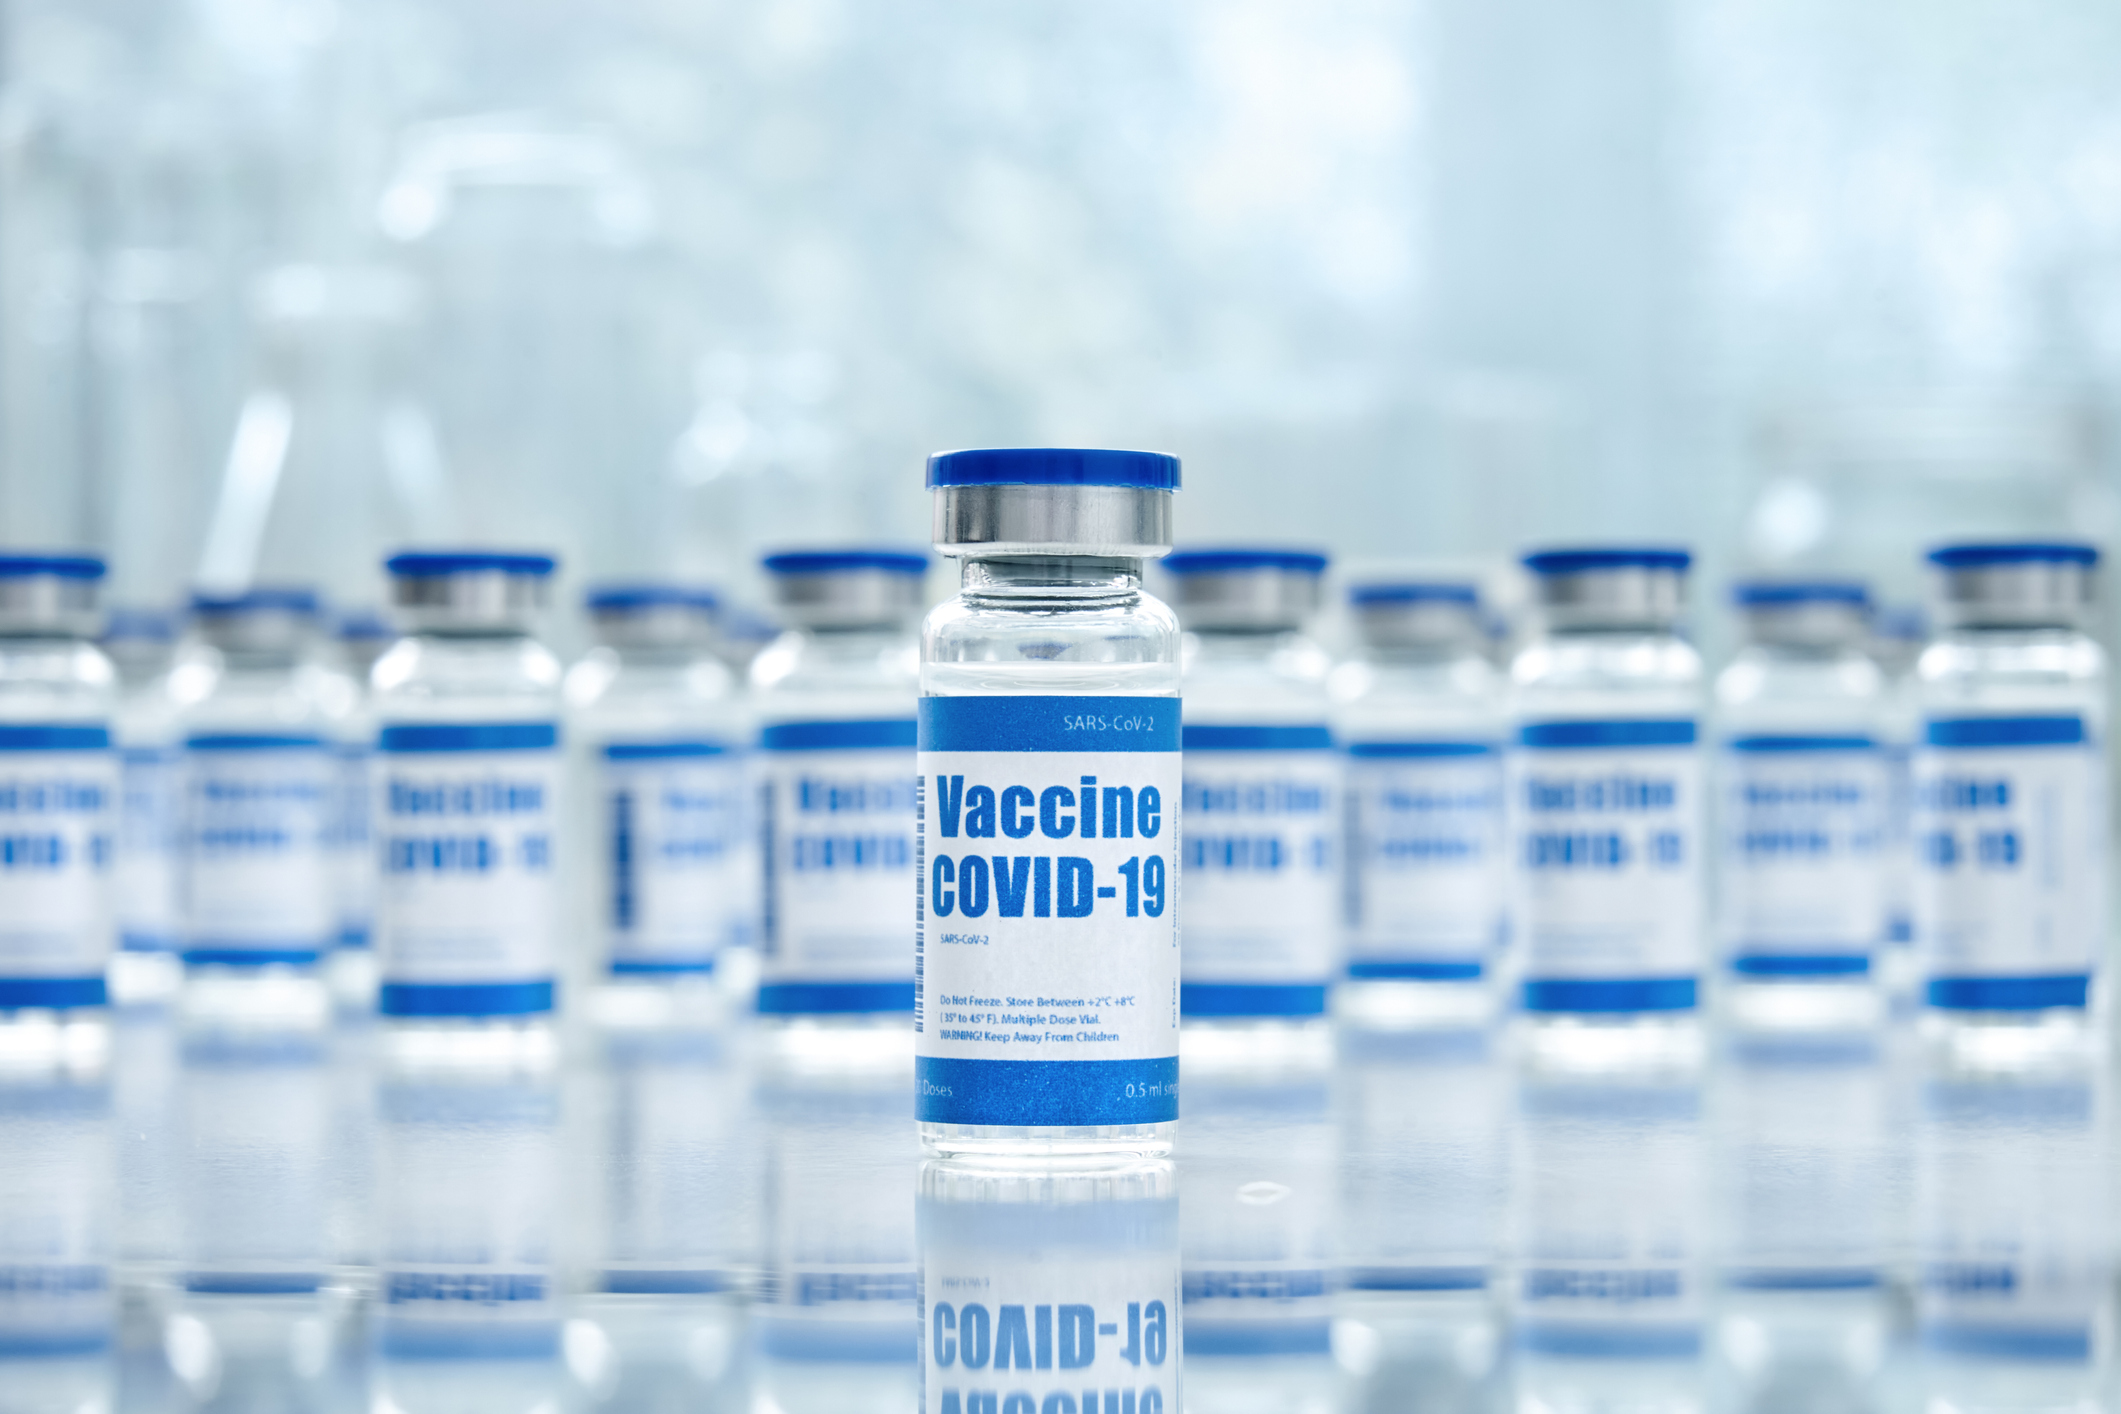 COVID-19 and Vaccines